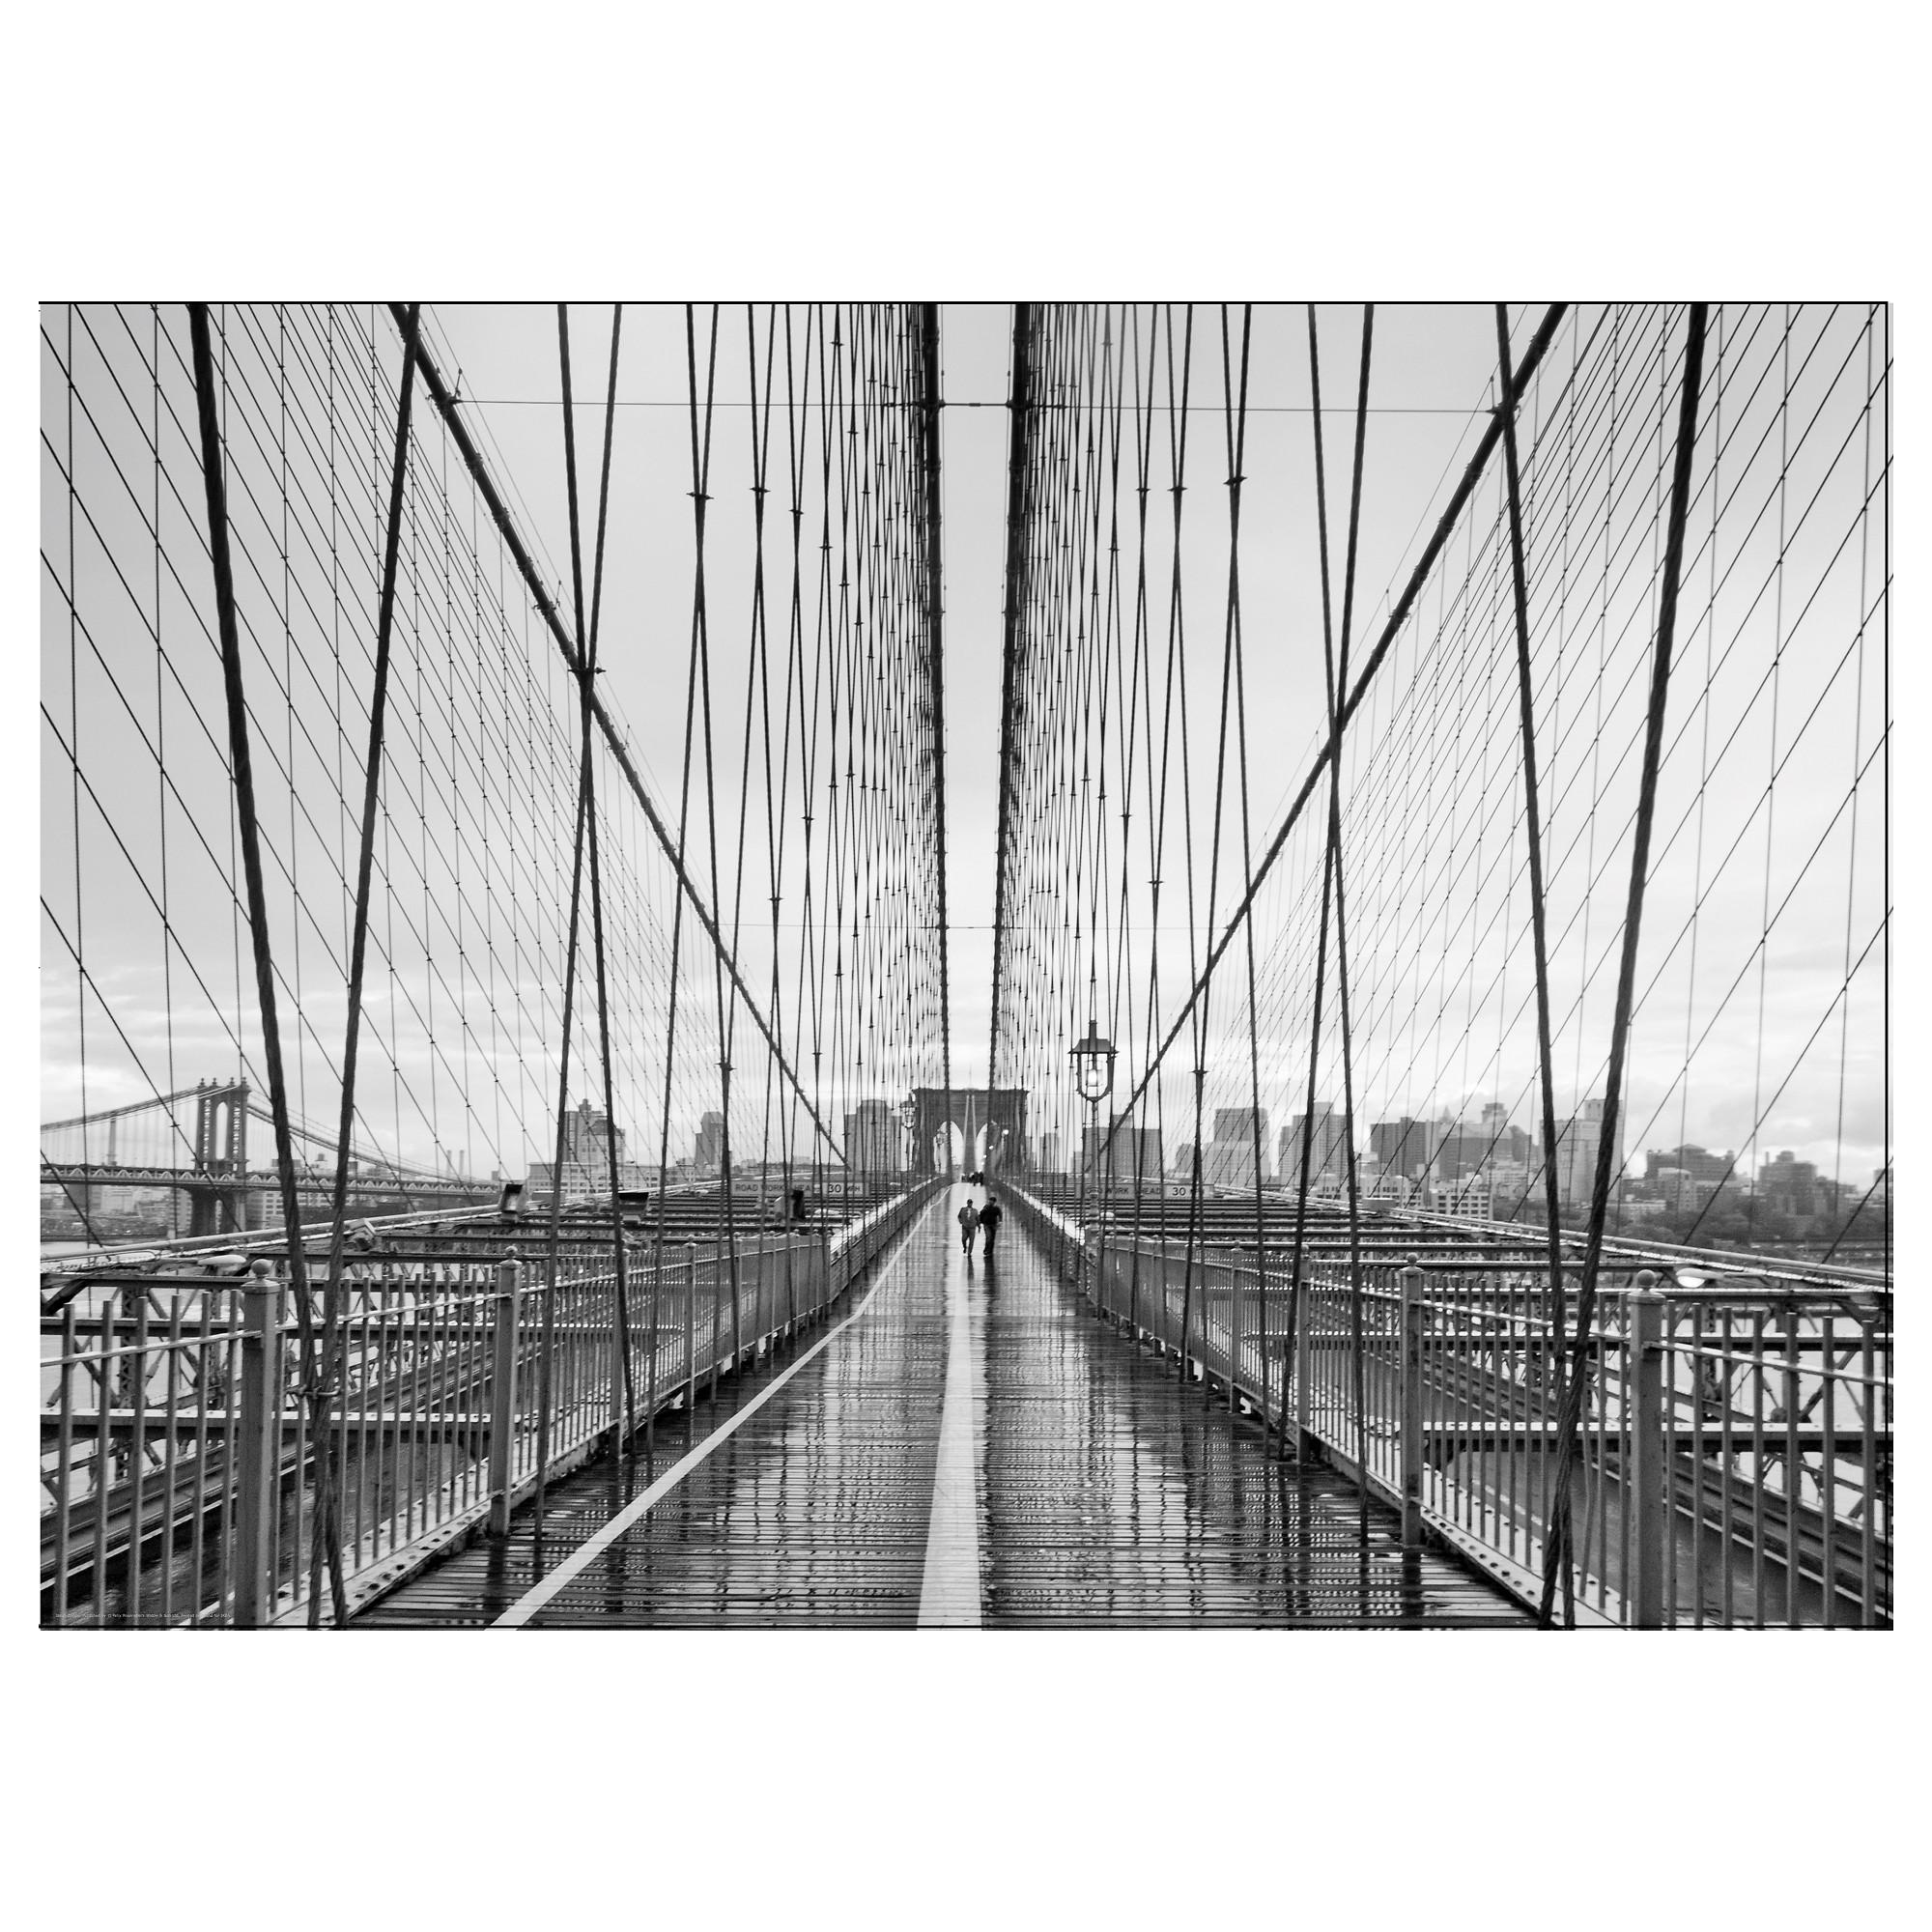 20 ideas of ikea brooklyn bridge wall art wall art ideas. Black Bedroom Furniture Sets. Home Design Ideas